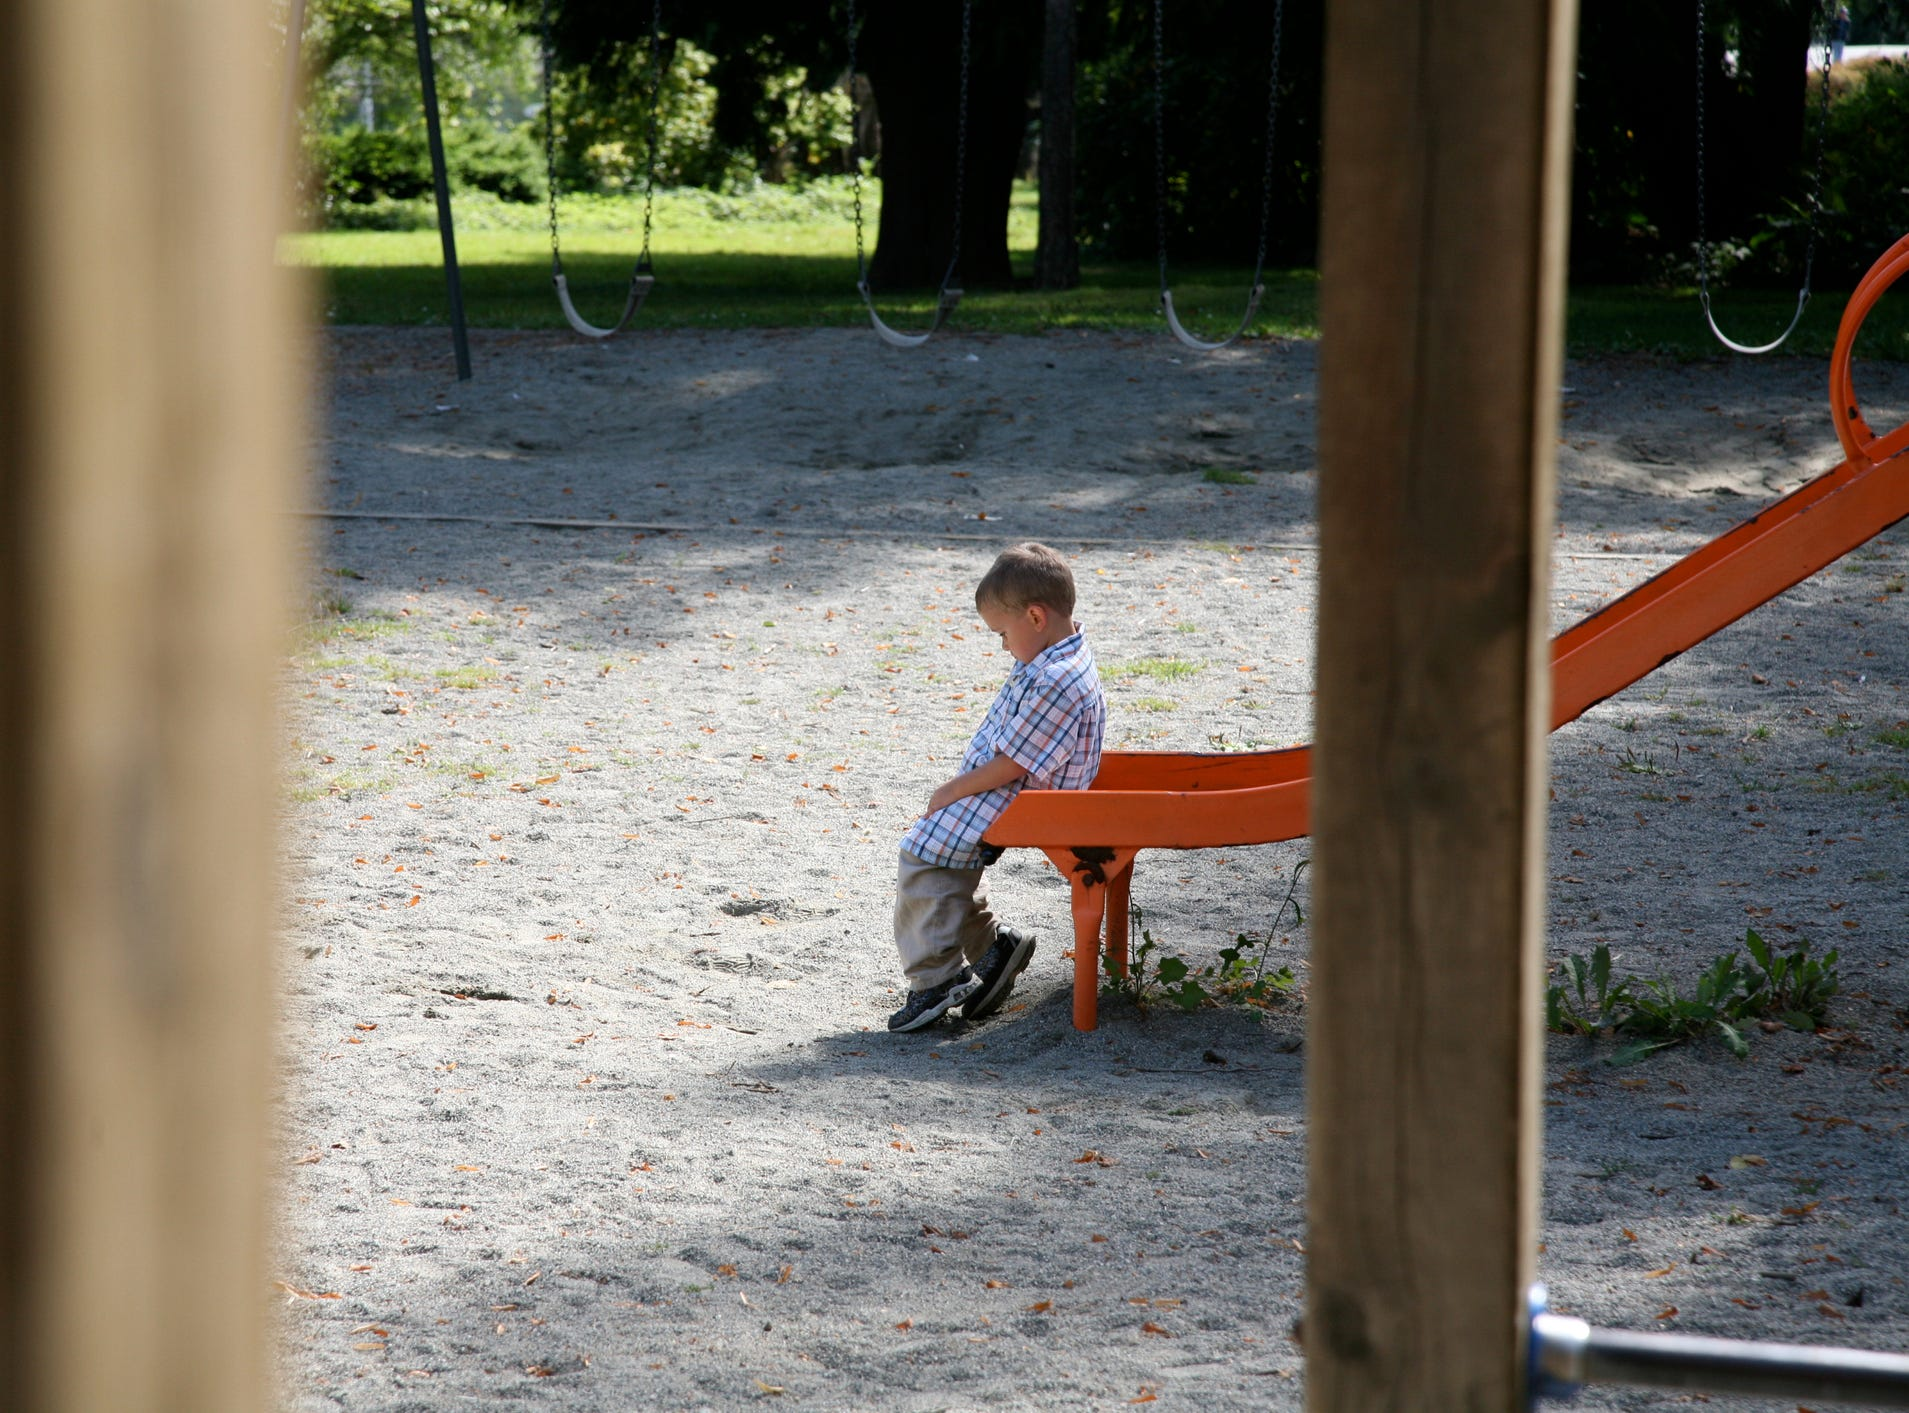 Mom asks little boy to leave public park because she wants girls-only playtime